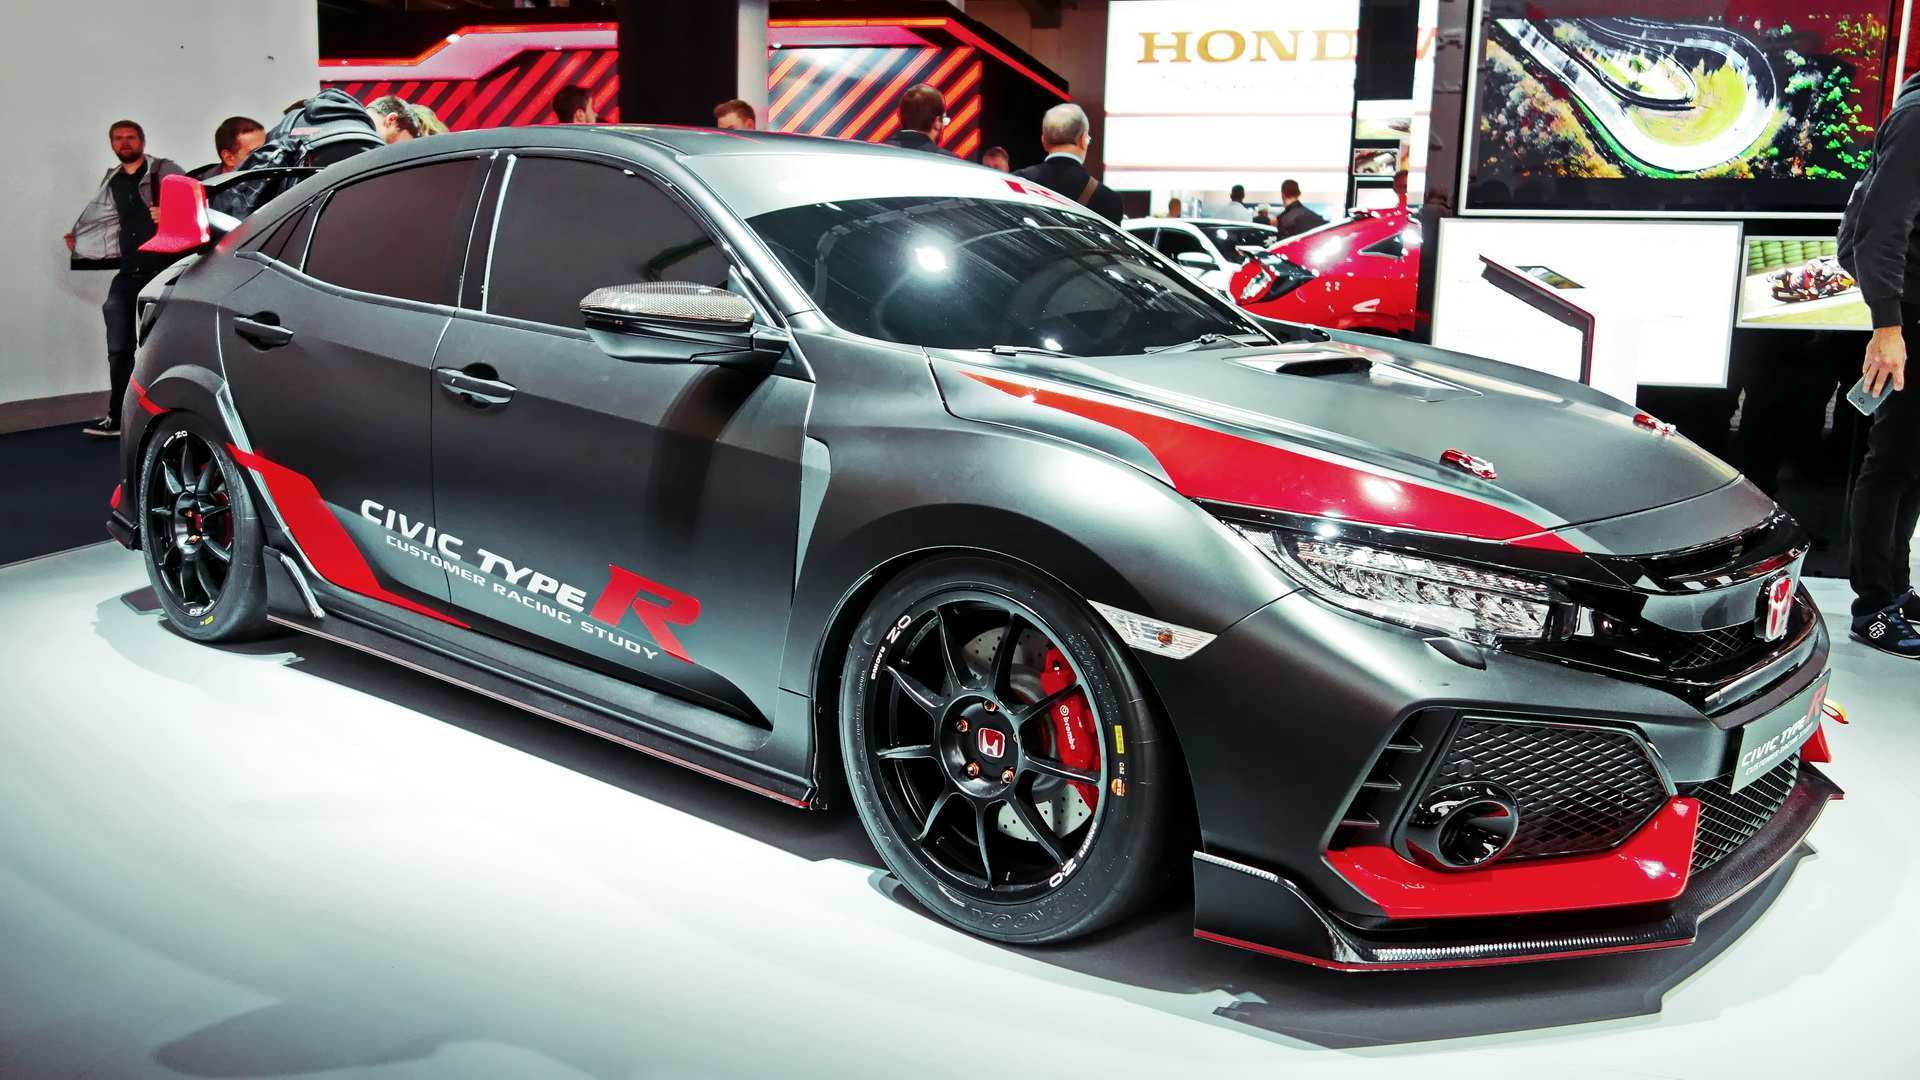 80 Best Review New Honda Type R 2019 Release Date Review And Release Date Release by New Honda Type R 2019 Release Date Review And Release Date